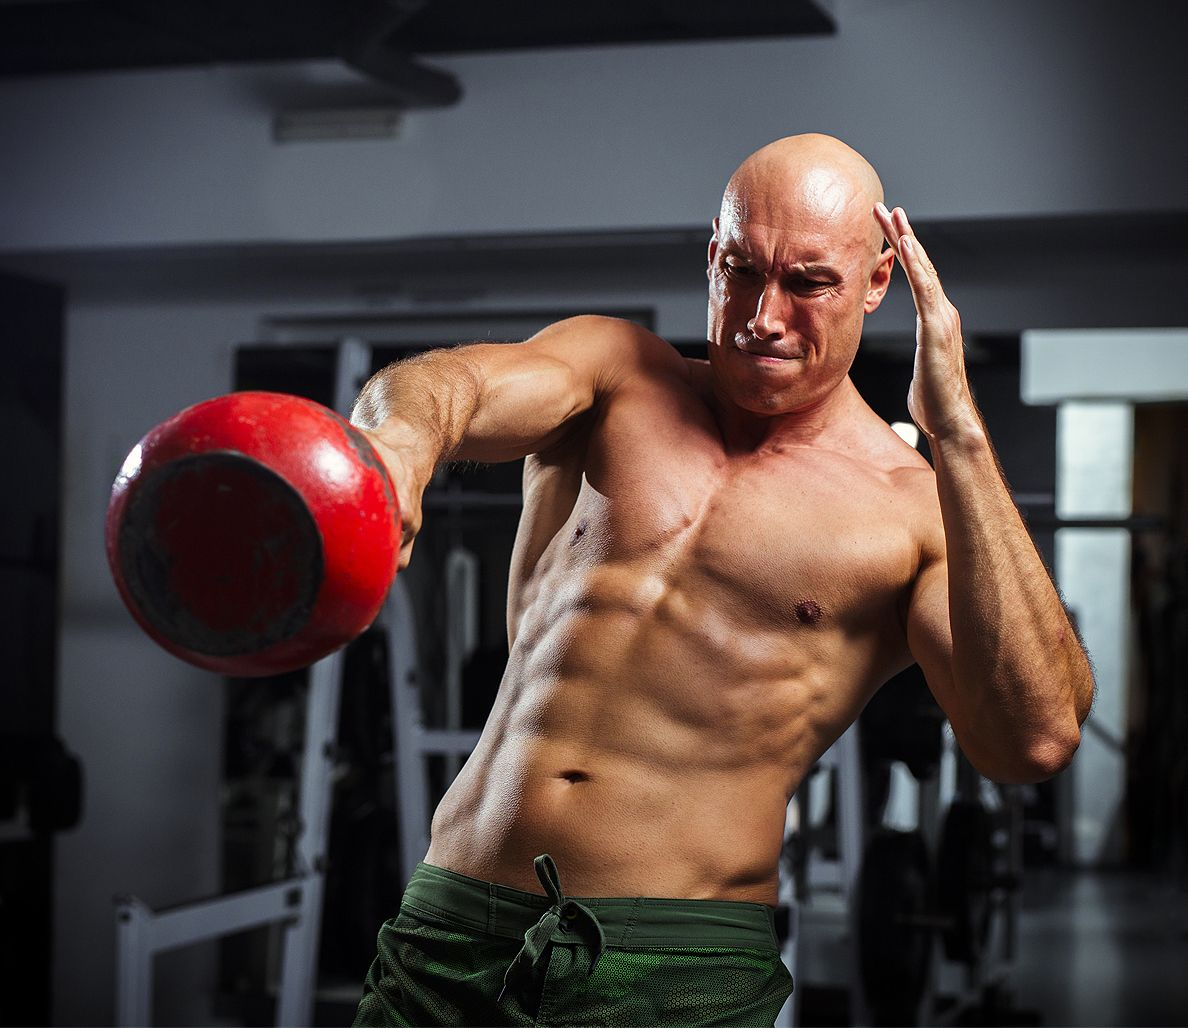 Kettlebell Training Benefits: 8 Kettlebell Workouts To Build Total-Body Strength